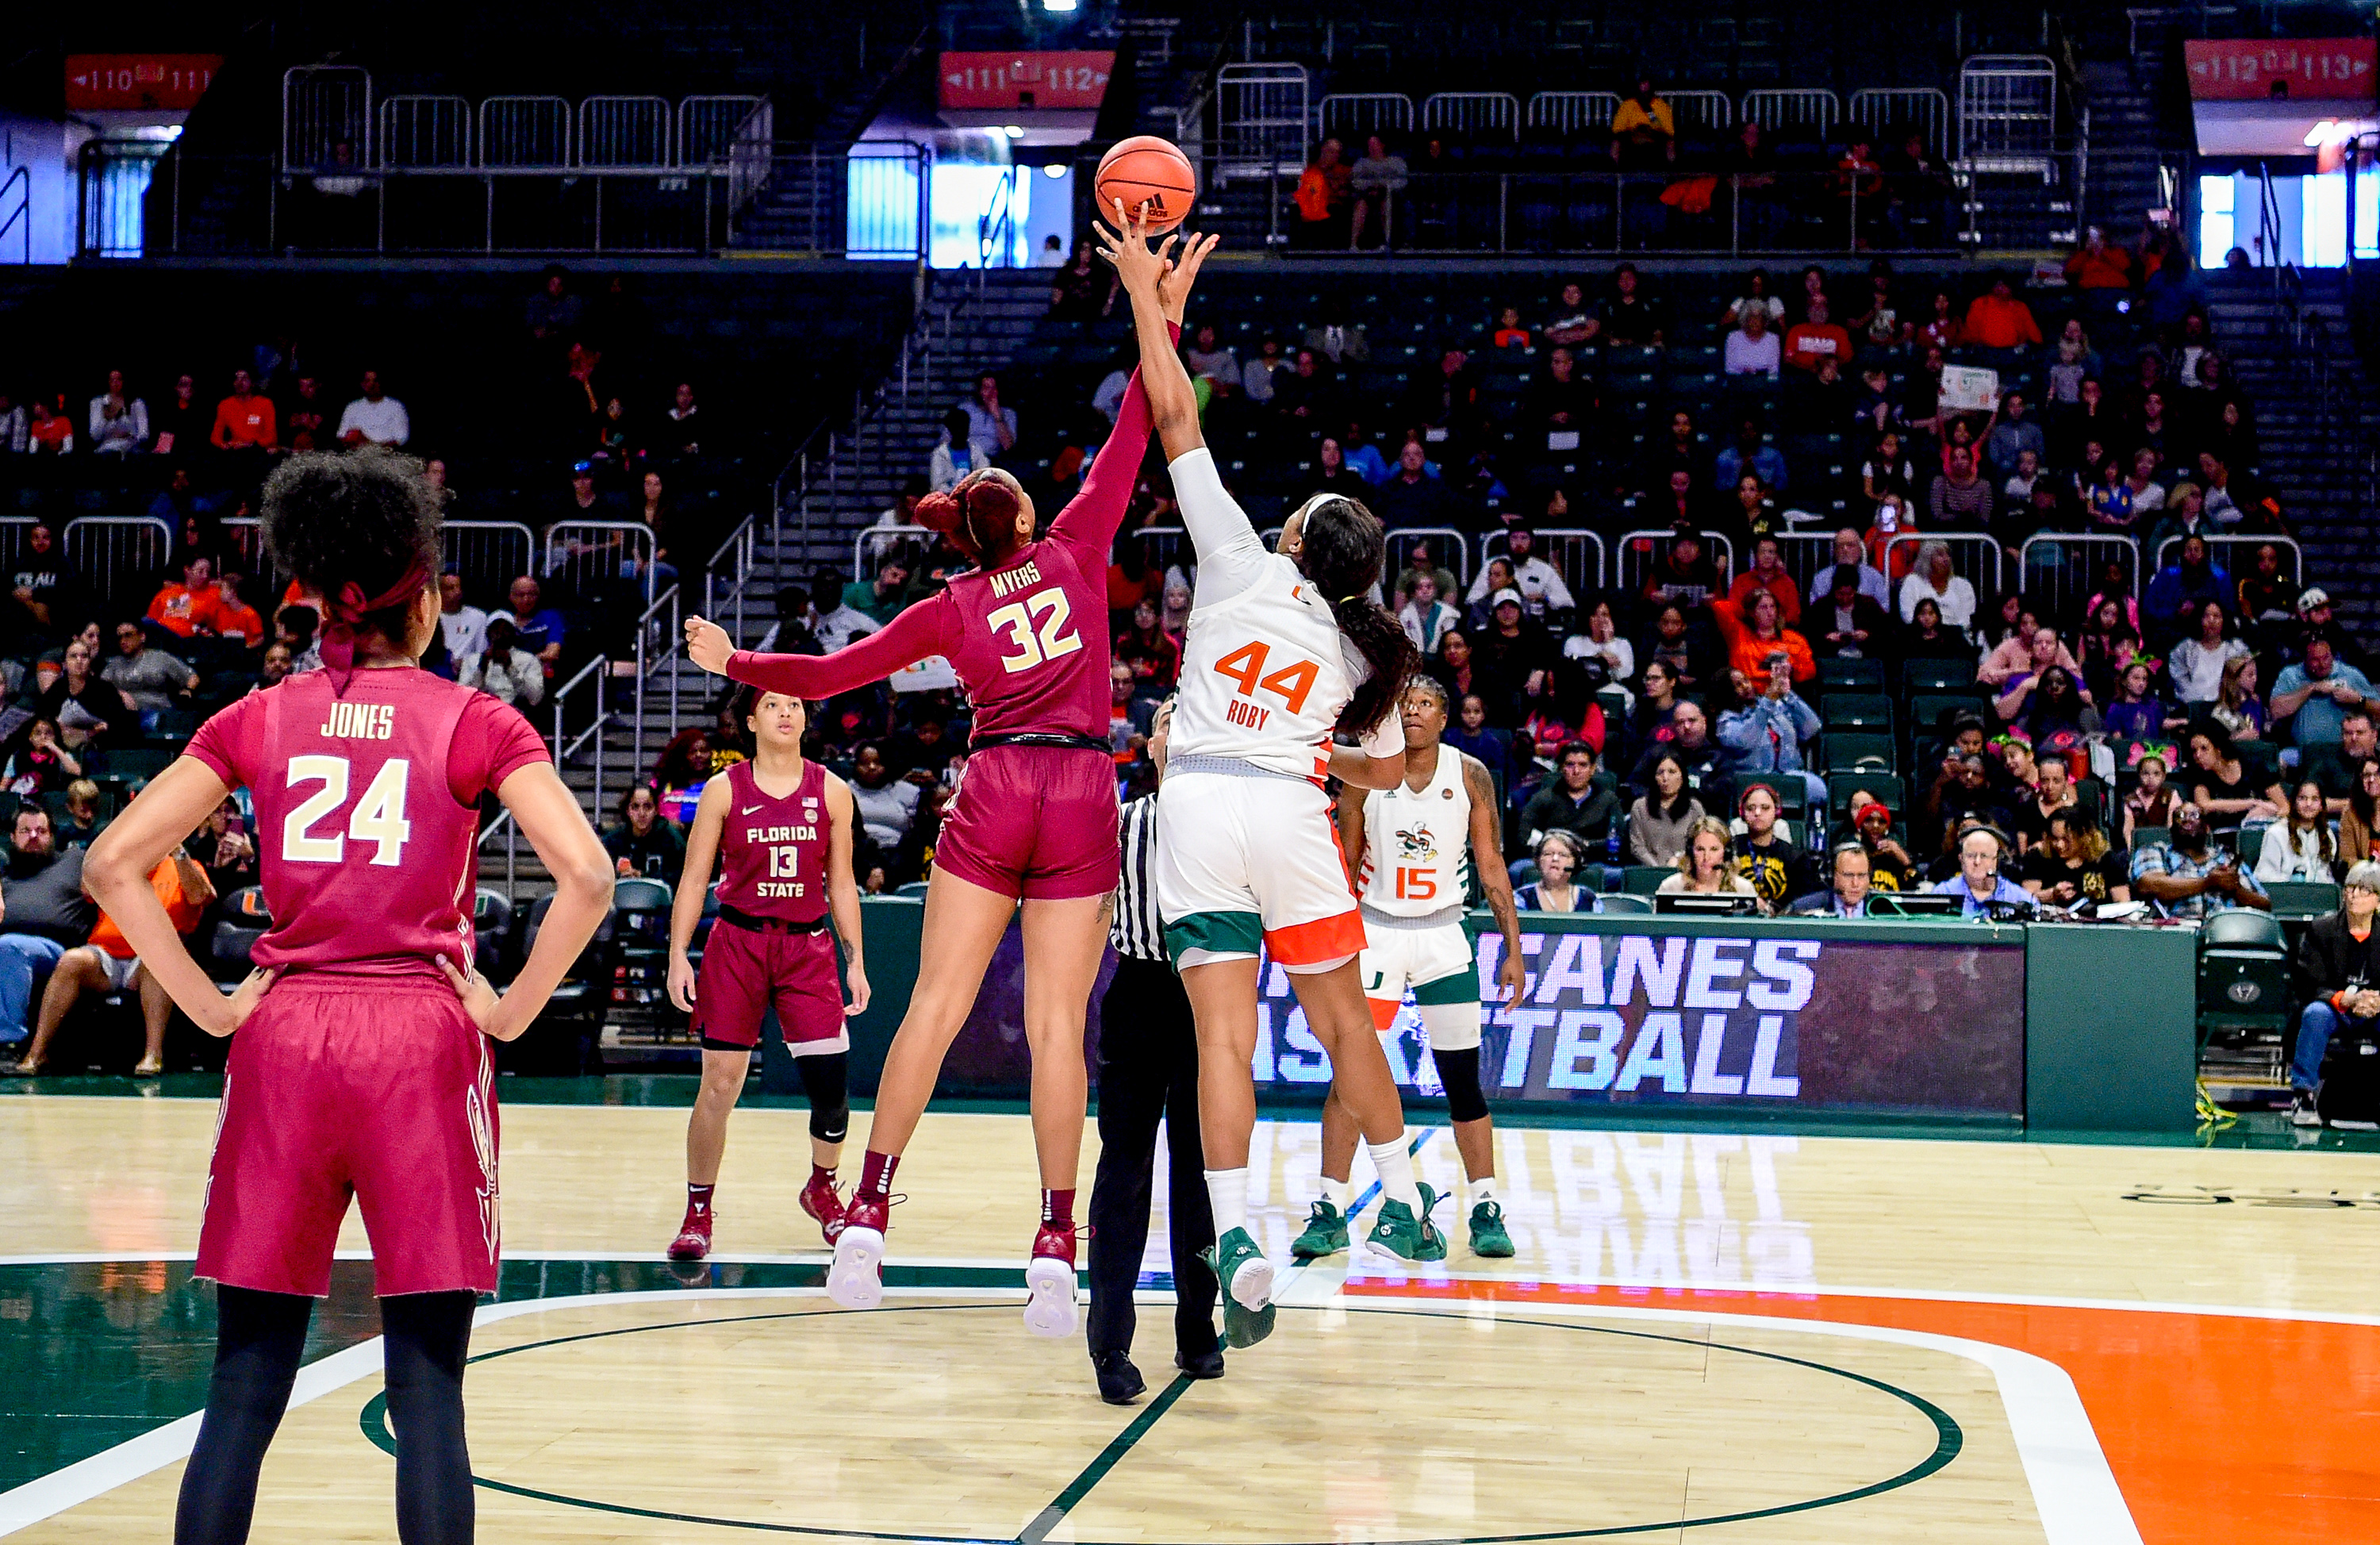 Noles Battle Canes on Sunday at the Tuck